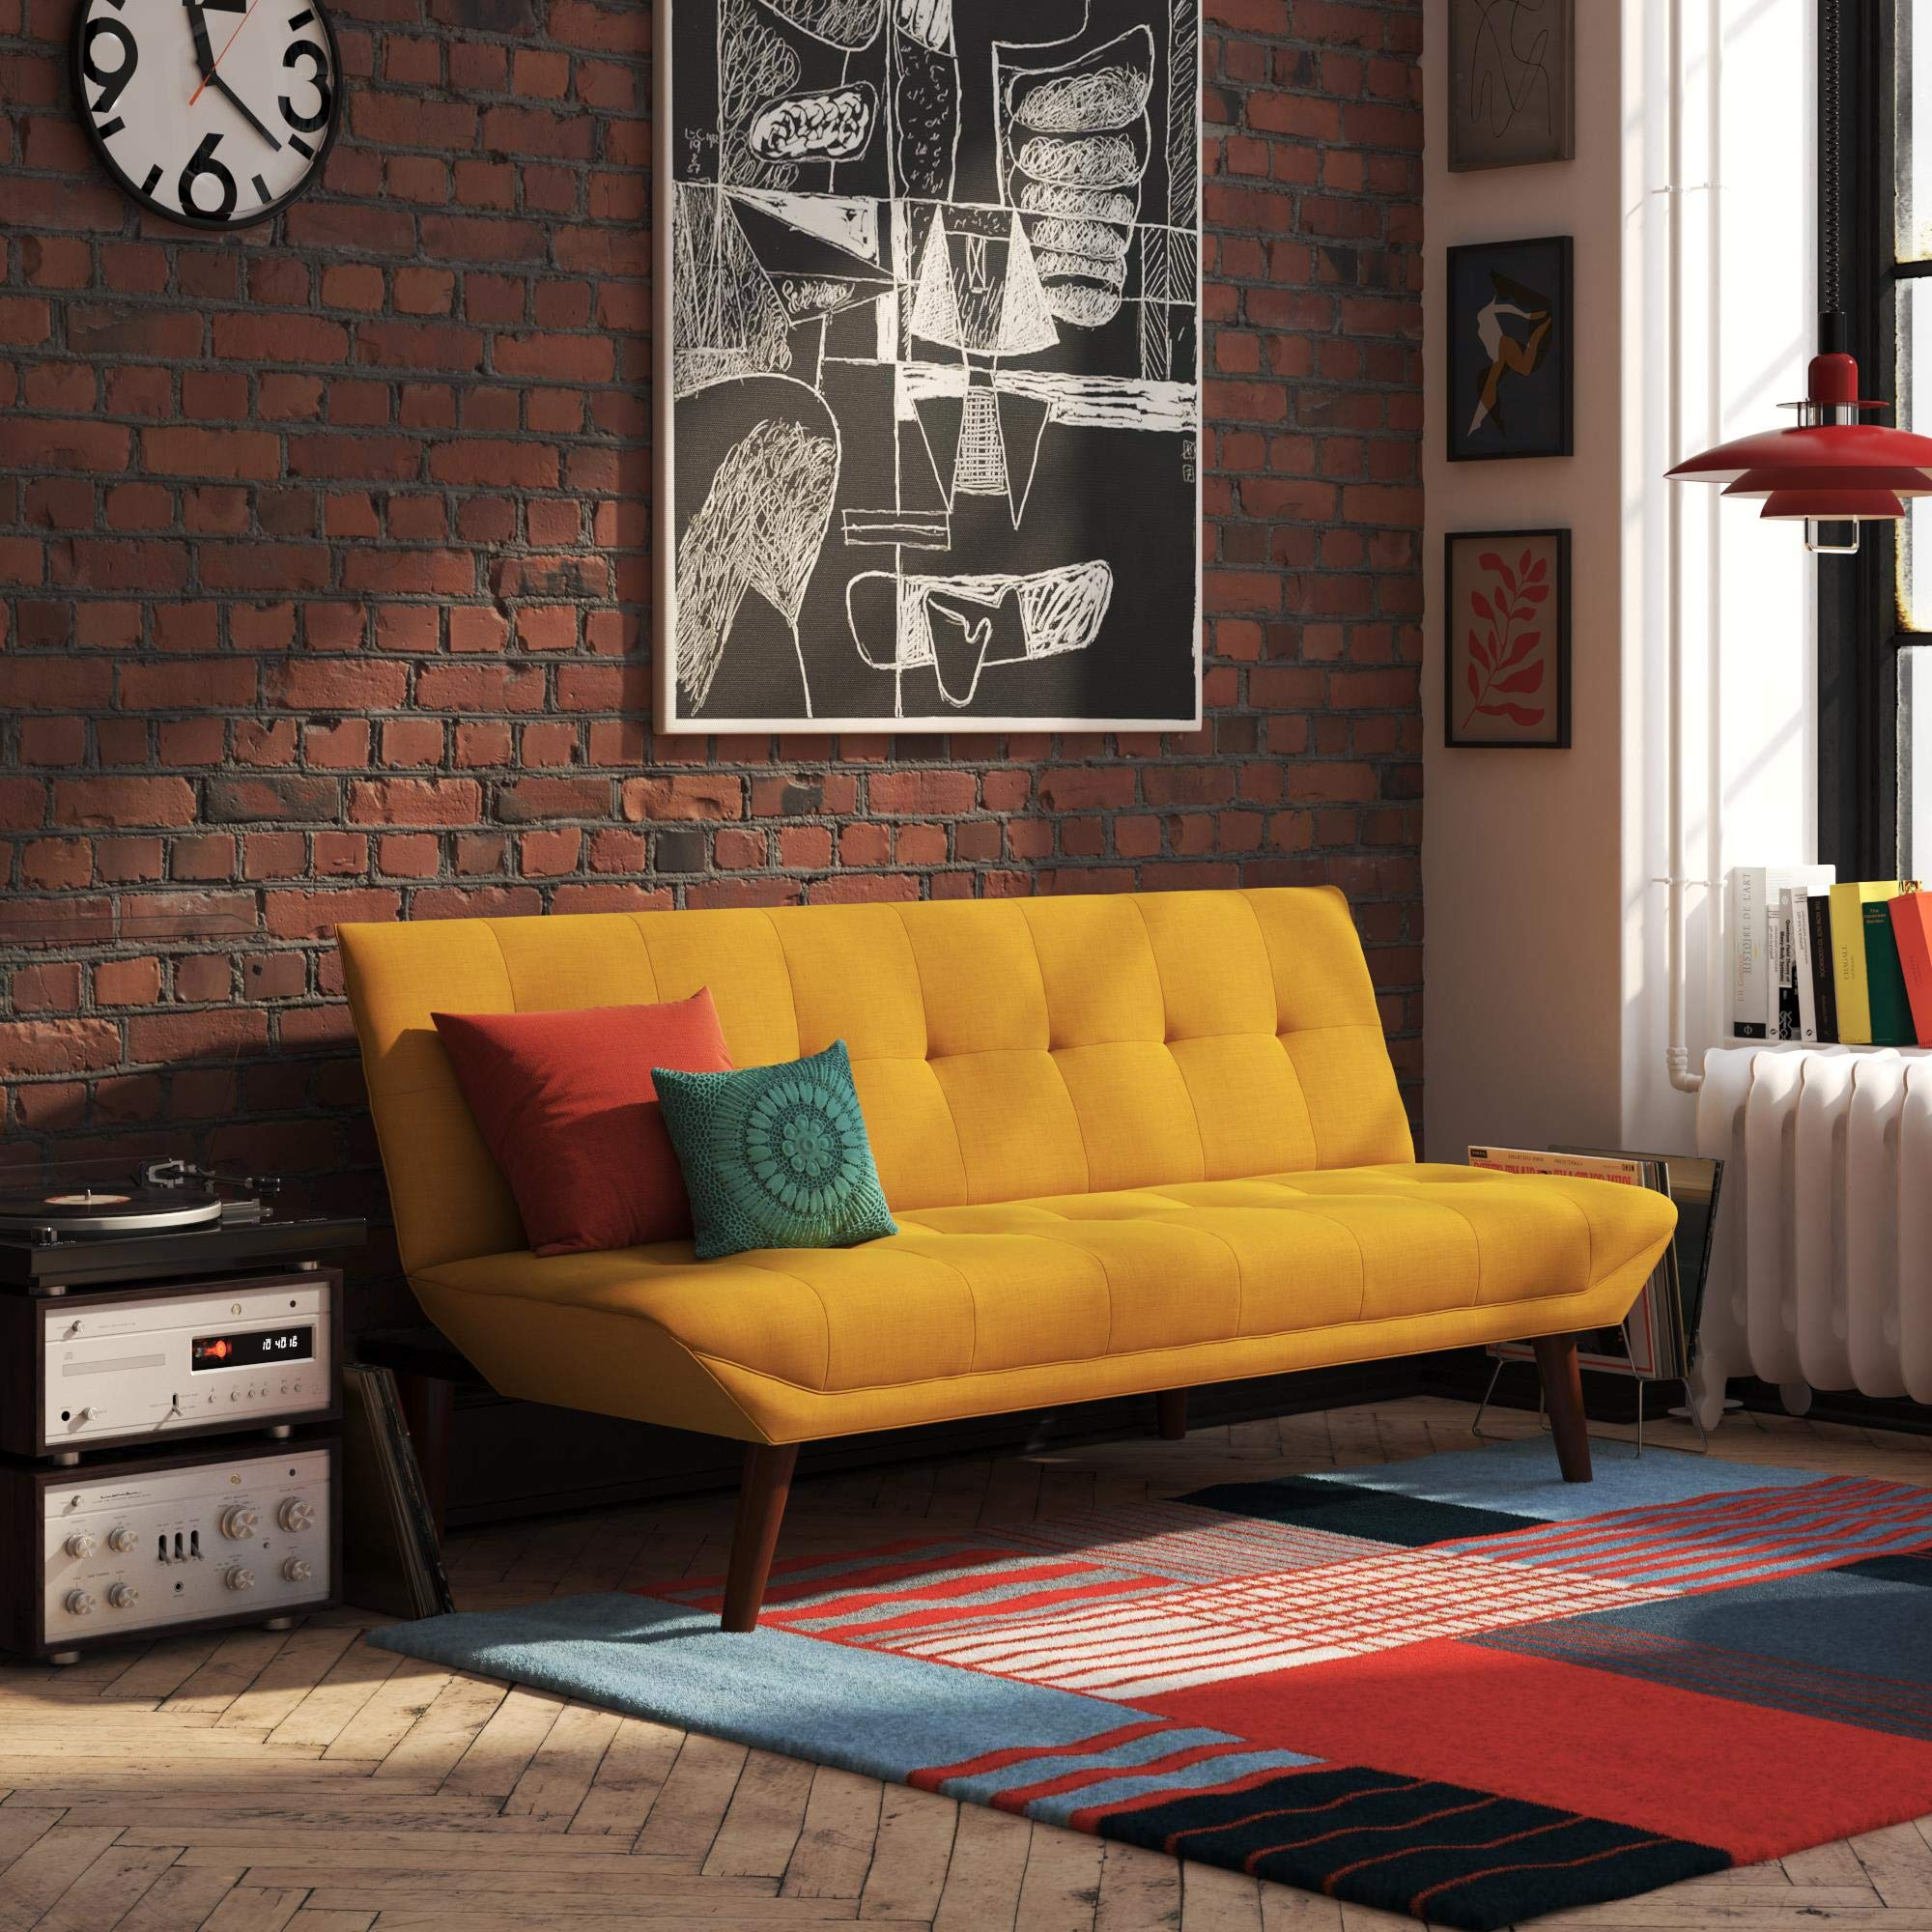 REALROOMS Adley Small Space Convertible Modern Futon Couch Lounger, Mustard Yellow Linen by REALROOMS